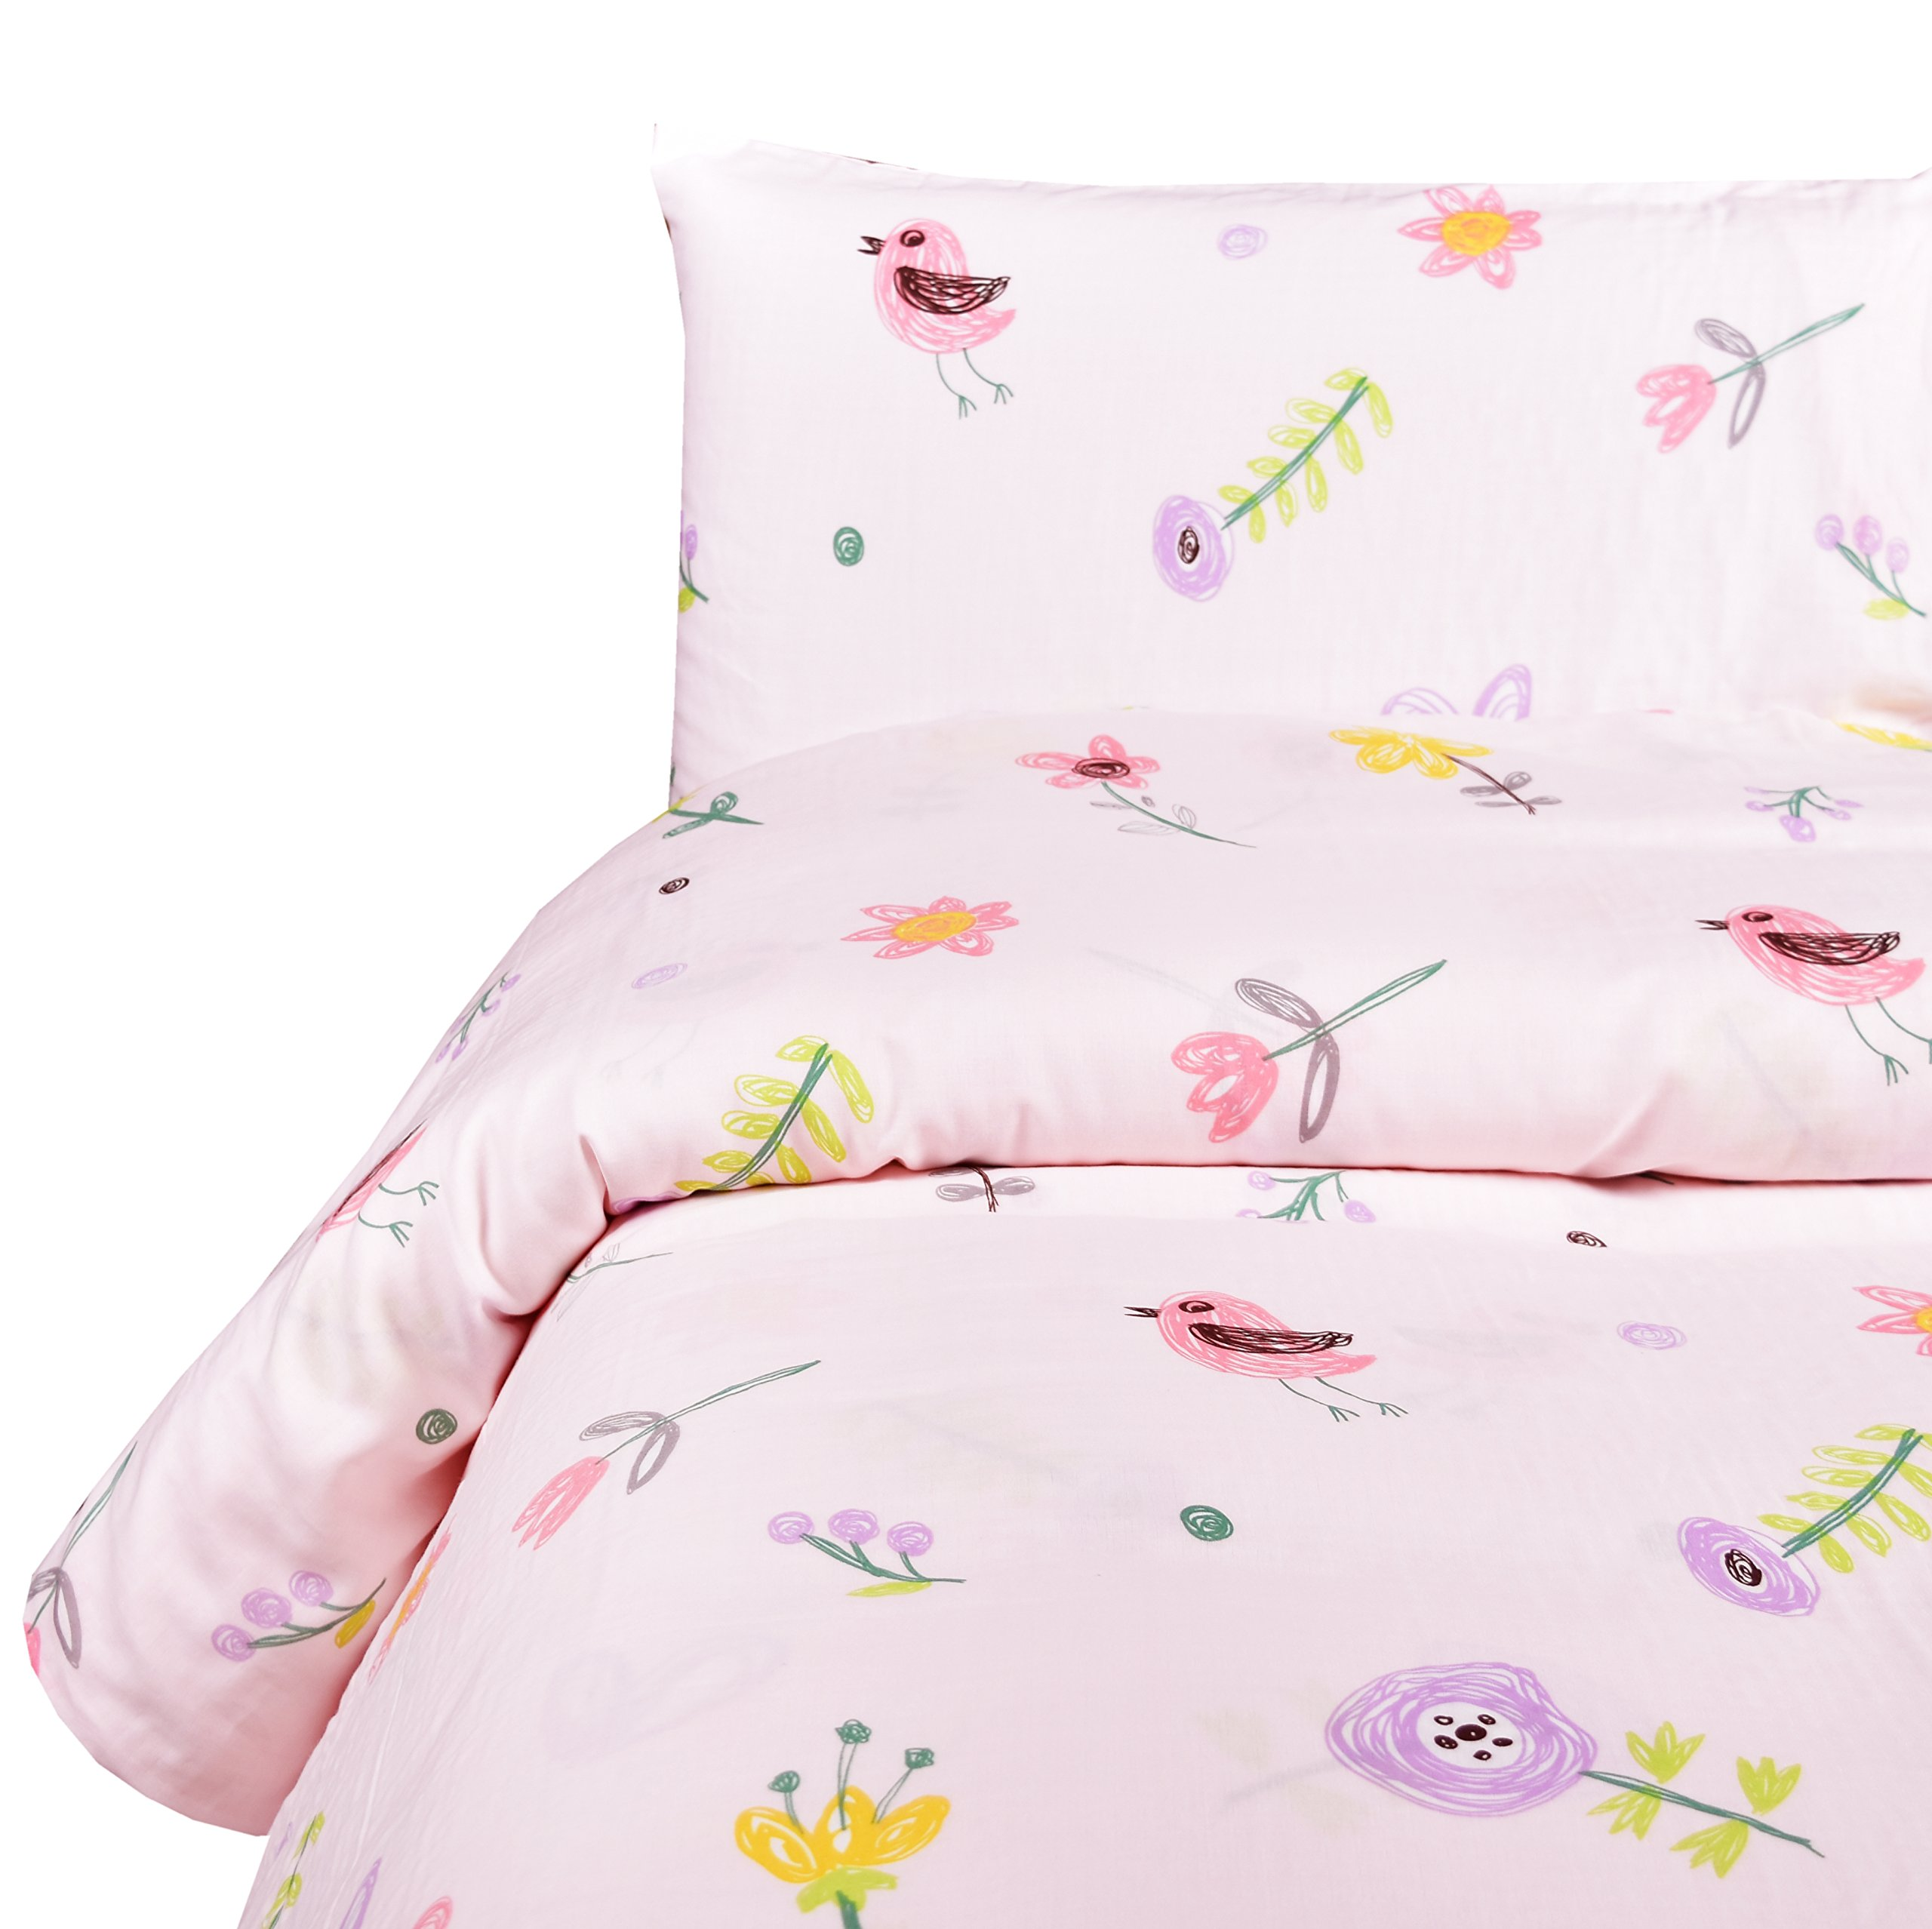 MEJU Birds & Flower Muslin Duvet Cover Set with Zipper Closure for Girls Twin Bed Decoration Gift, Double Layer Muslin 100% Cotton, Duvet Cover + Pillowcase (2, Twin)